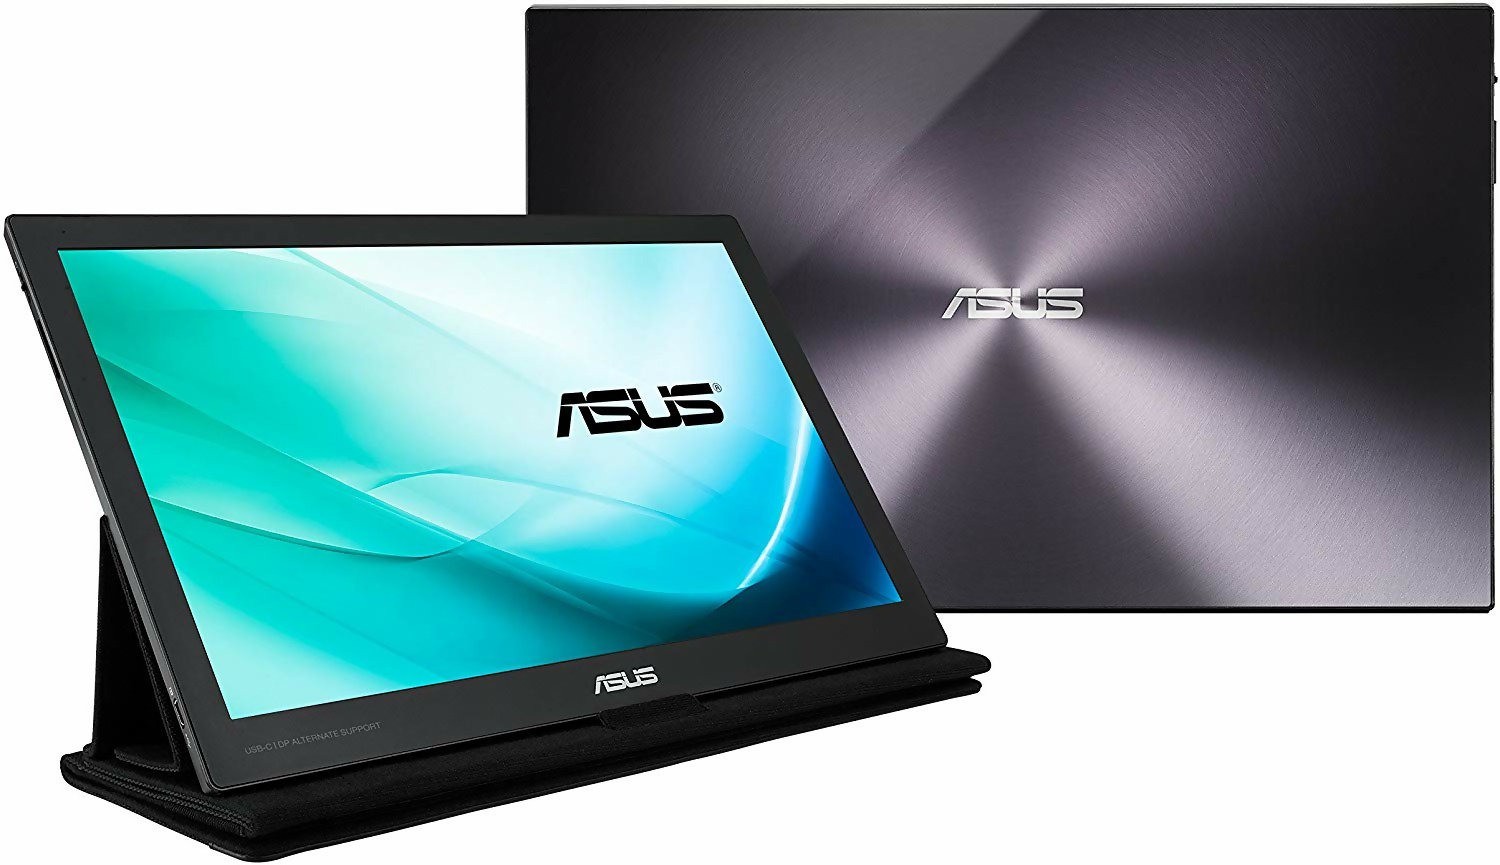 5. Asus MB169C+ – Best USB-C Portable Monitor for Laptops